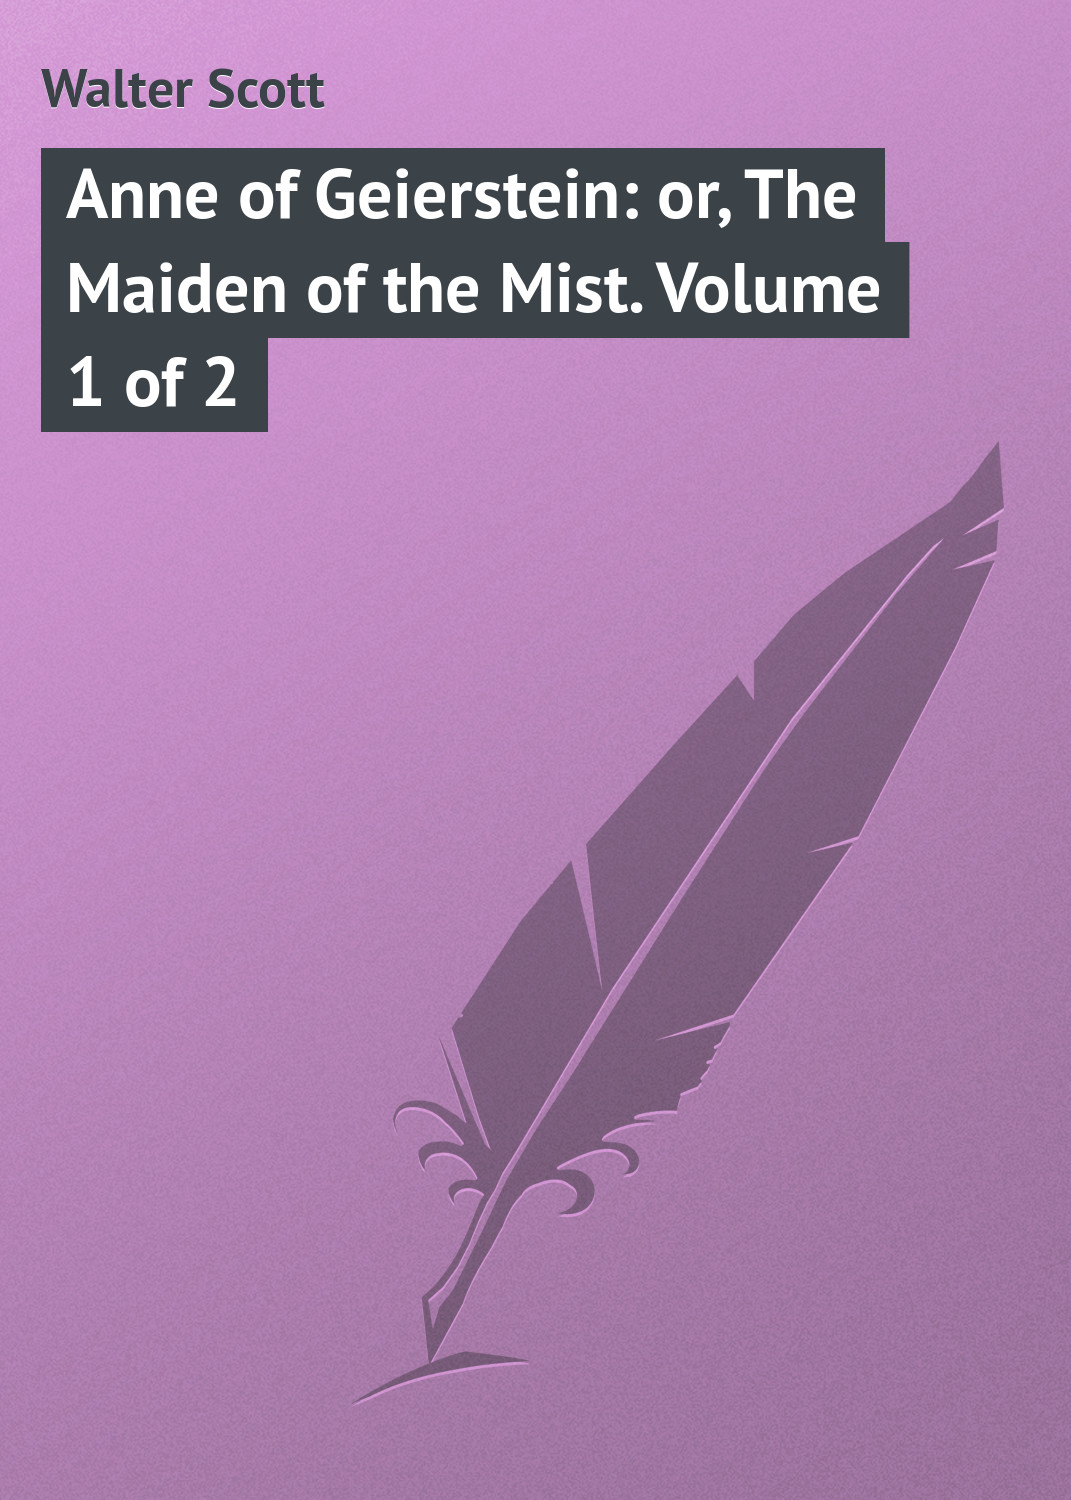 Walter Scott Anne of Geierstein: or, The Maiden of the Mist. Volume 1 of 2 walter scott a legend of montrose